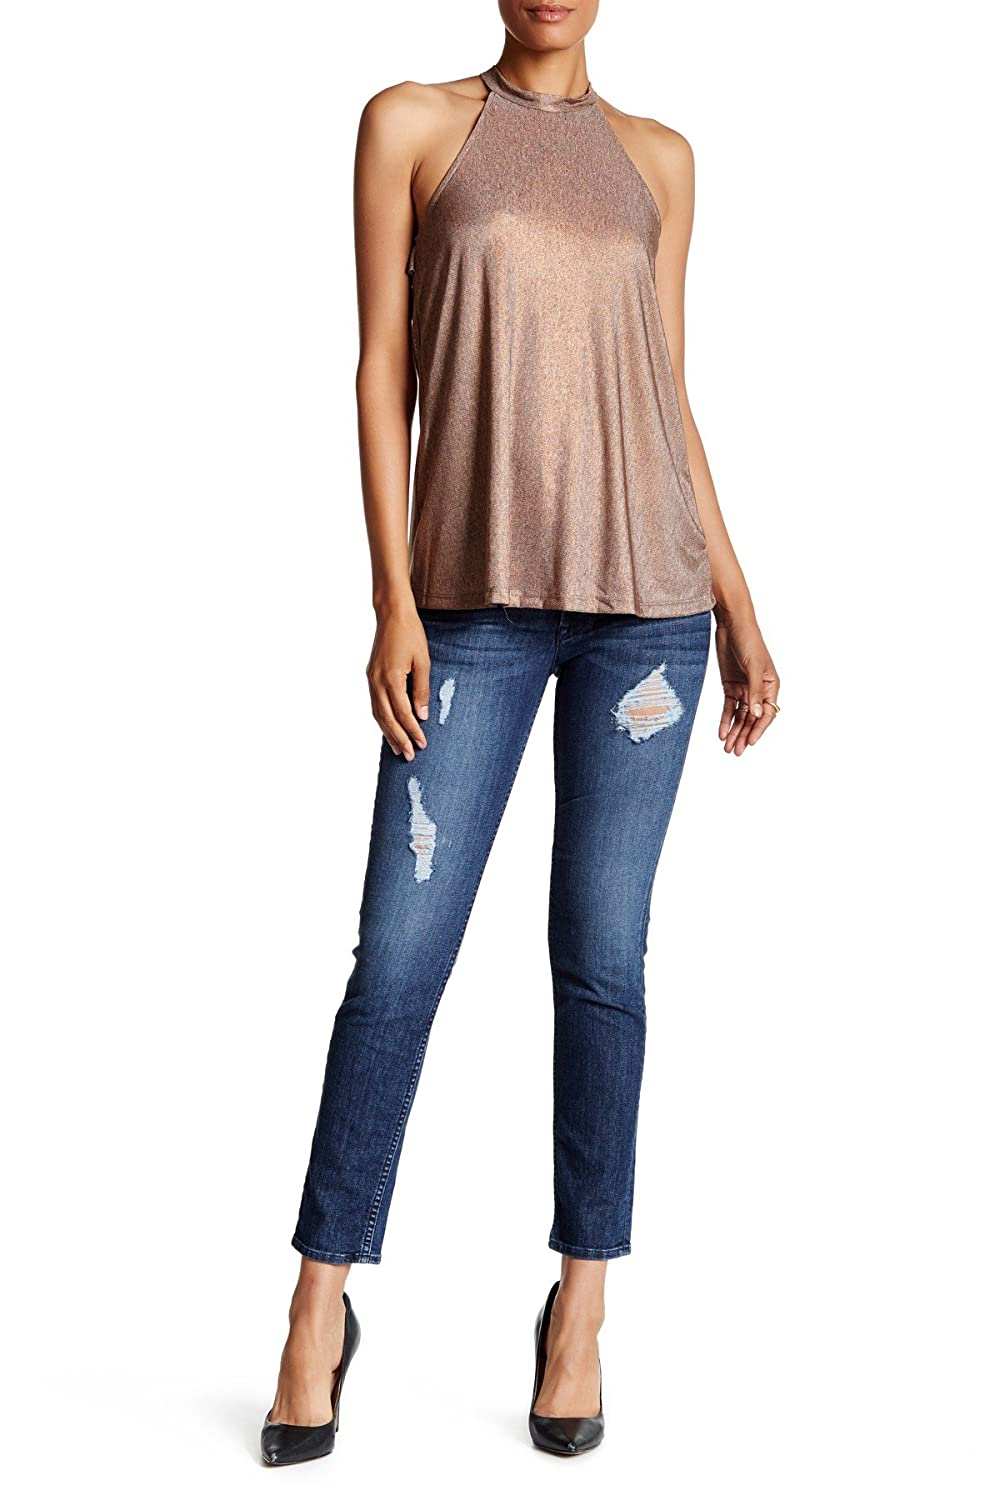 Hudson Women's Collin Midrise Skinny Ankle in Samtosa